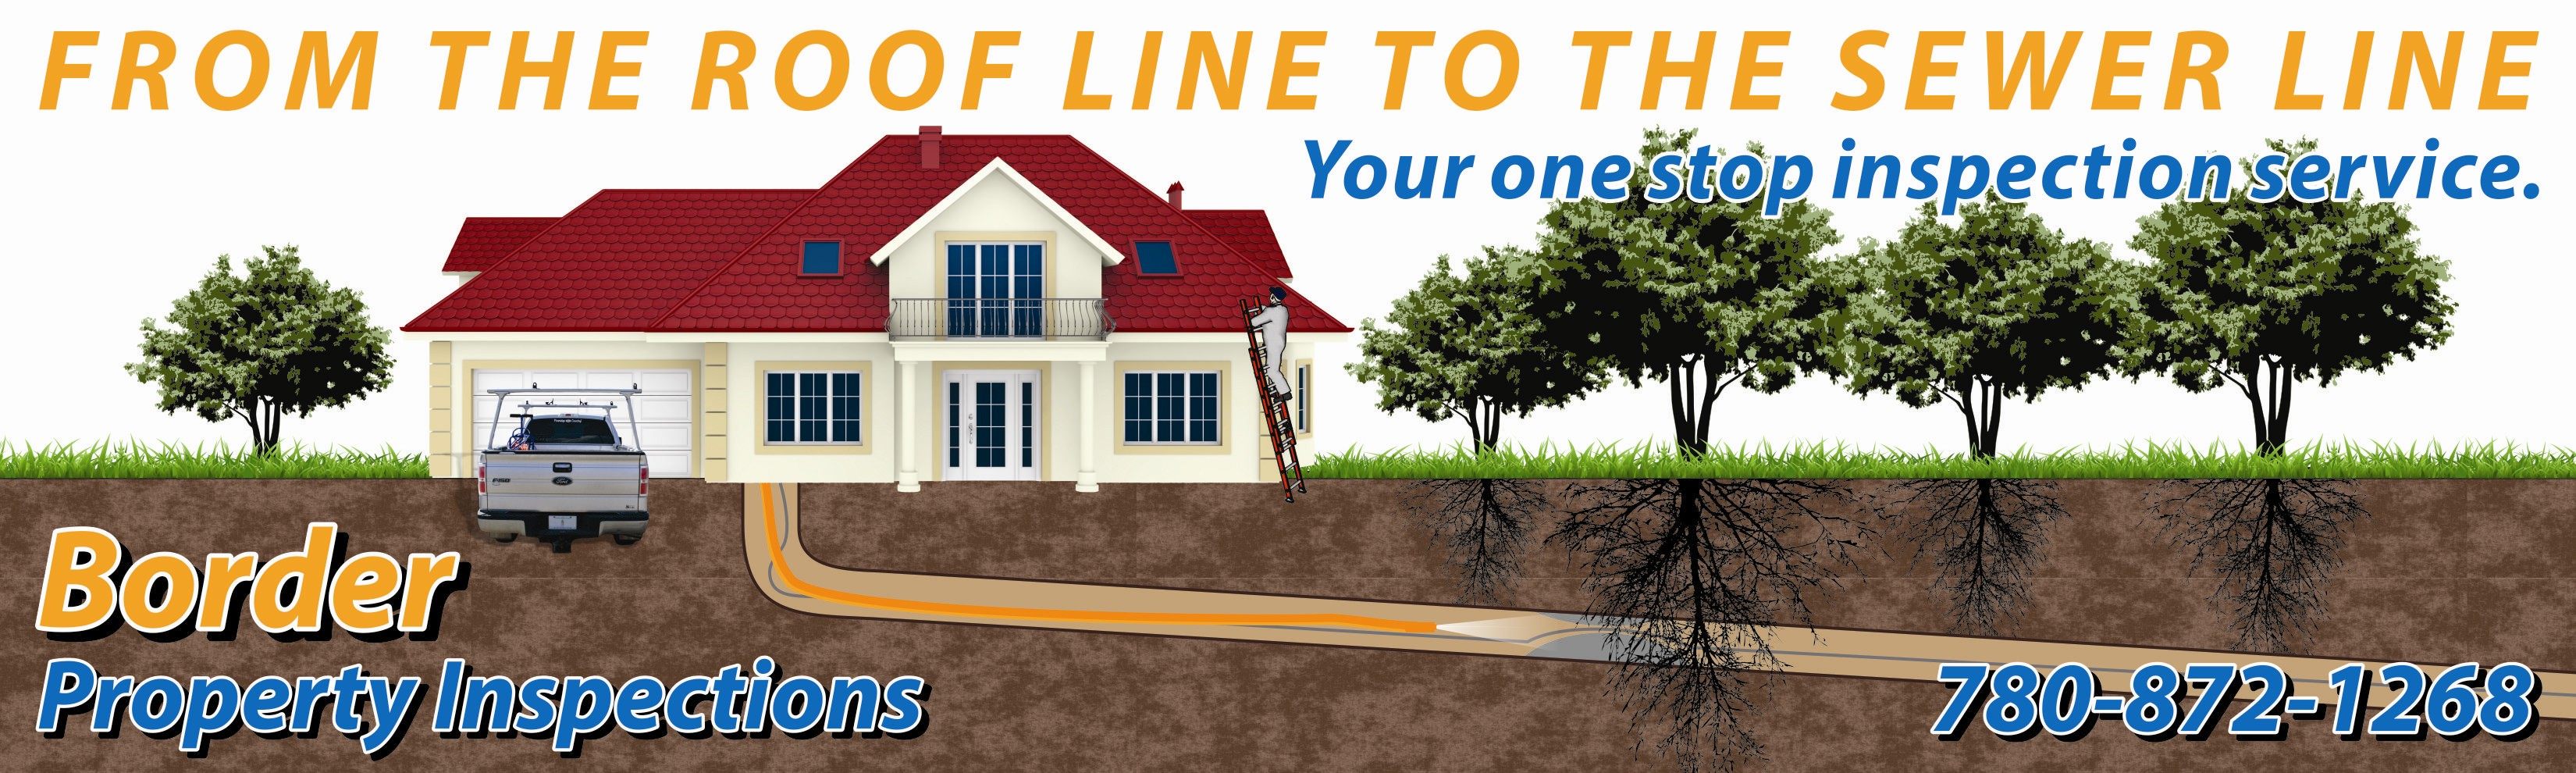 From the roofline to sewer line